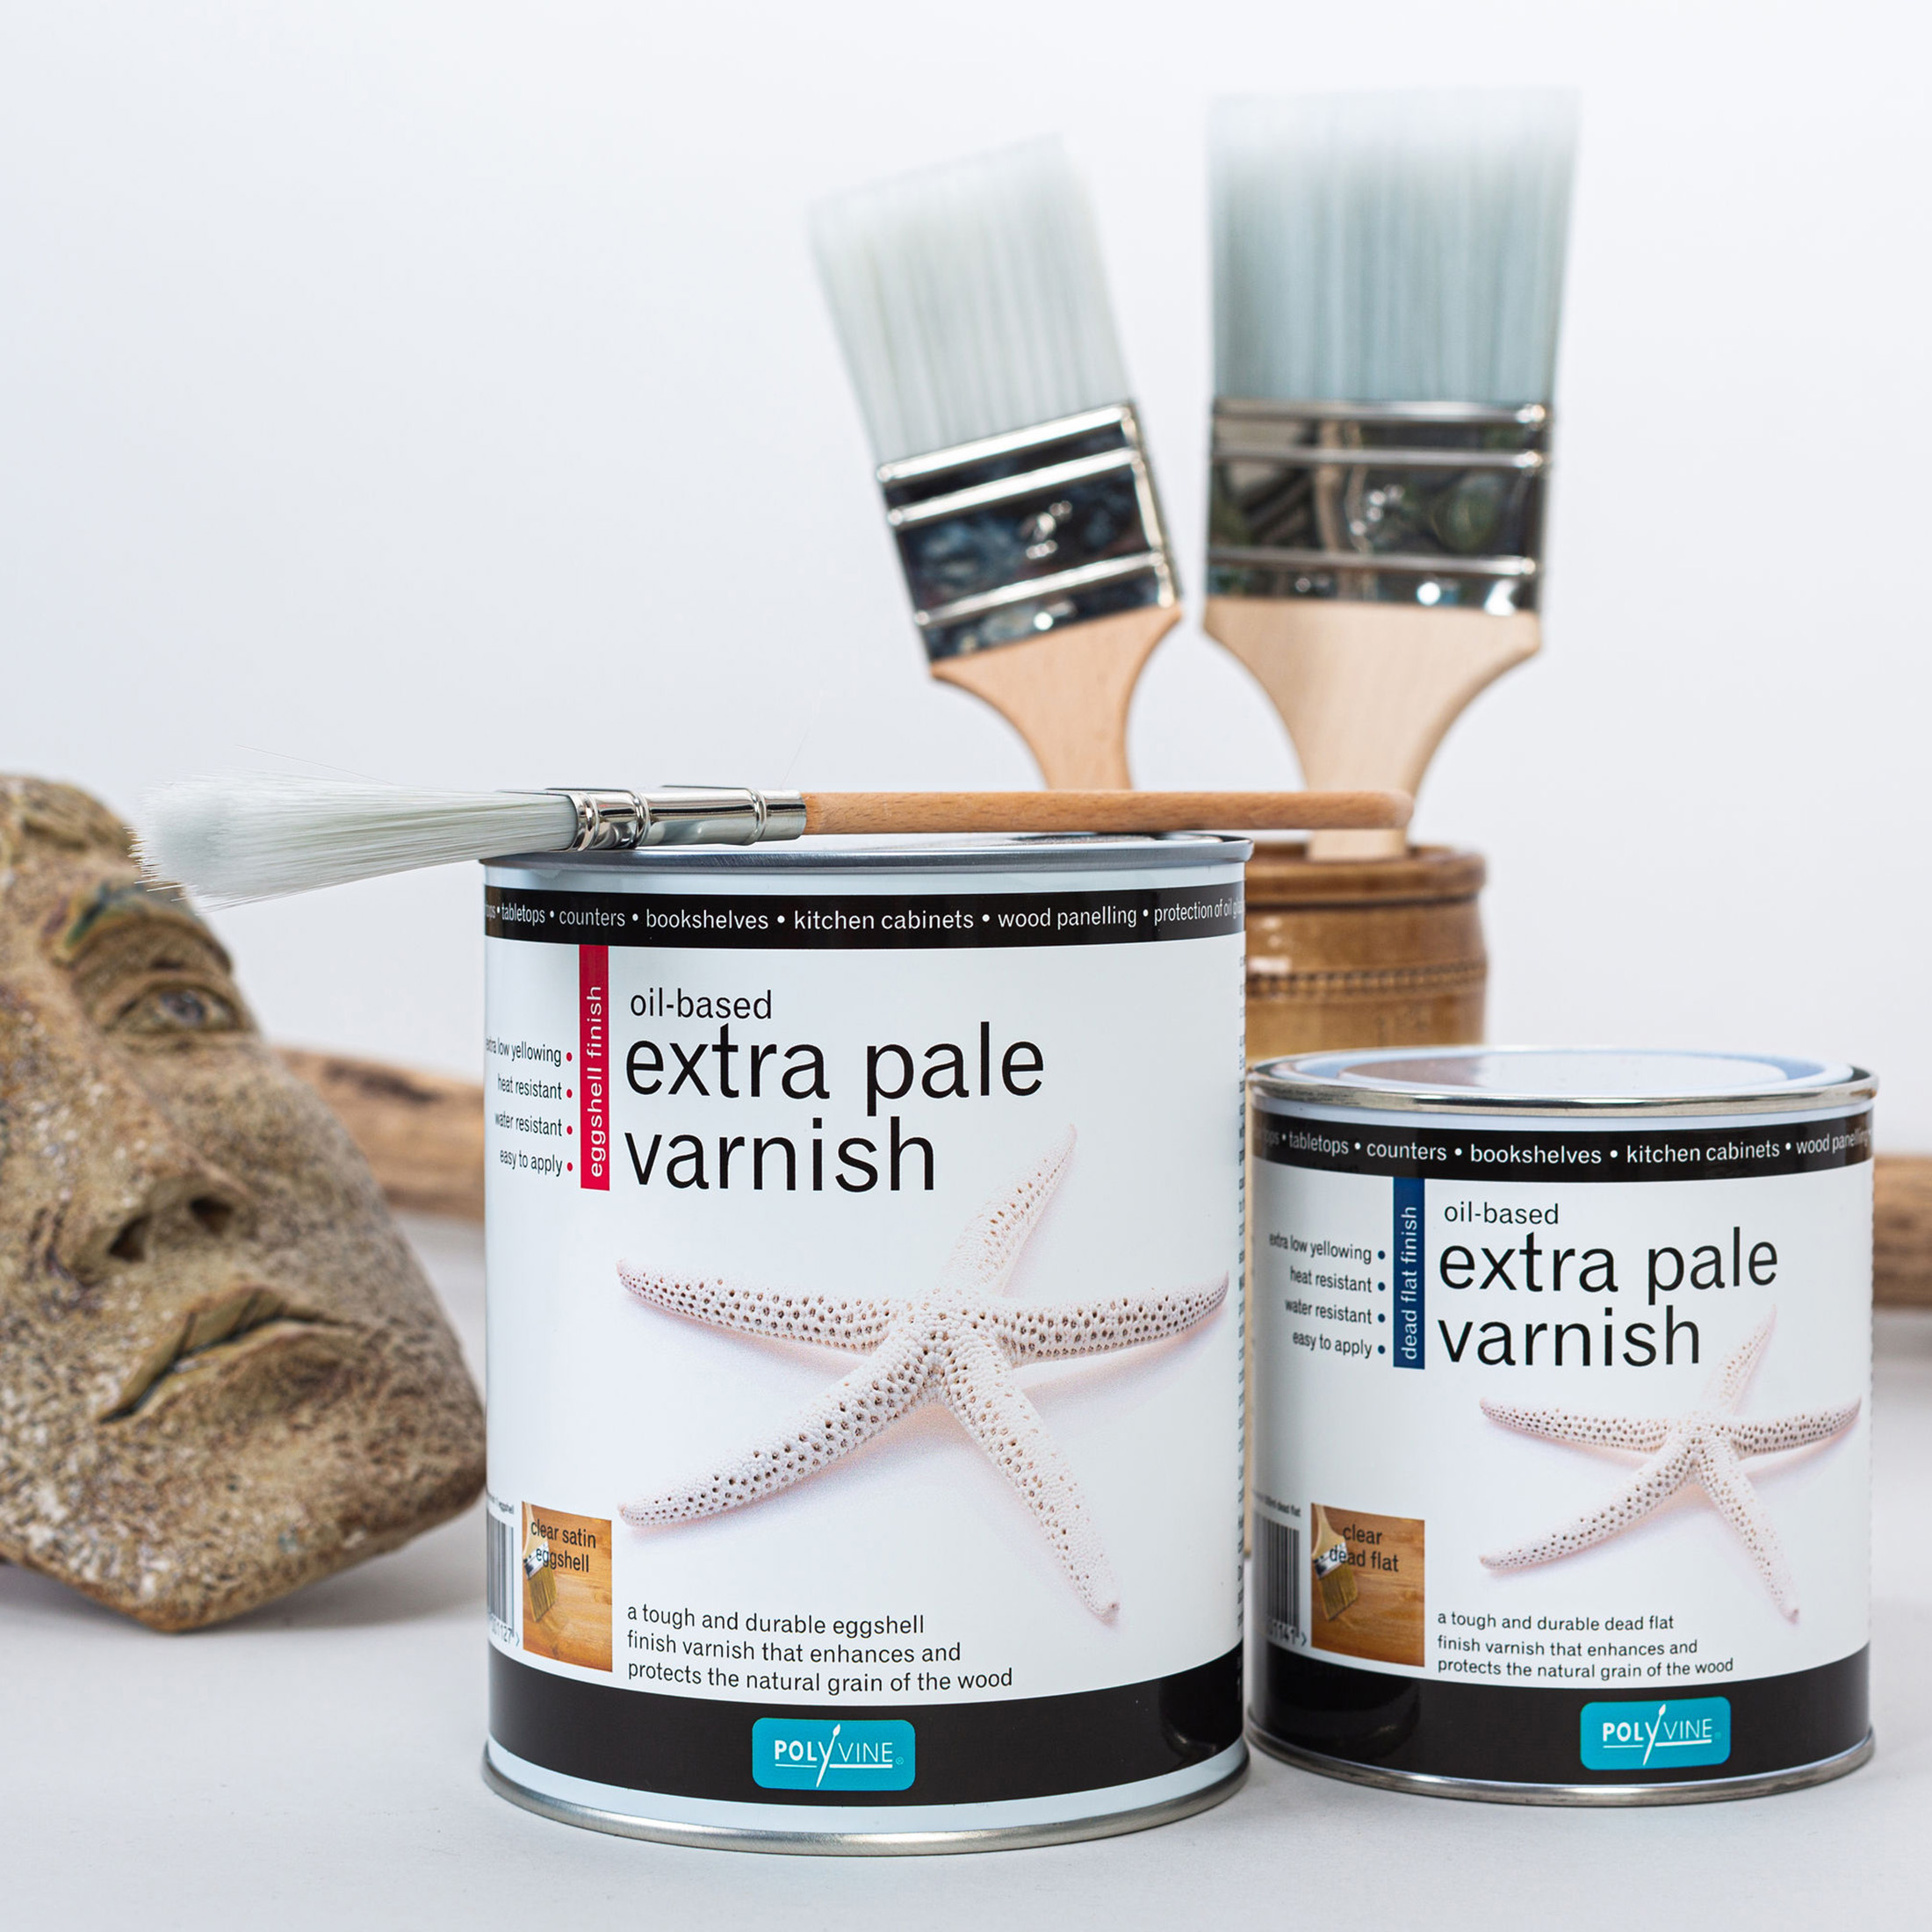 polyvine extra pale varnish